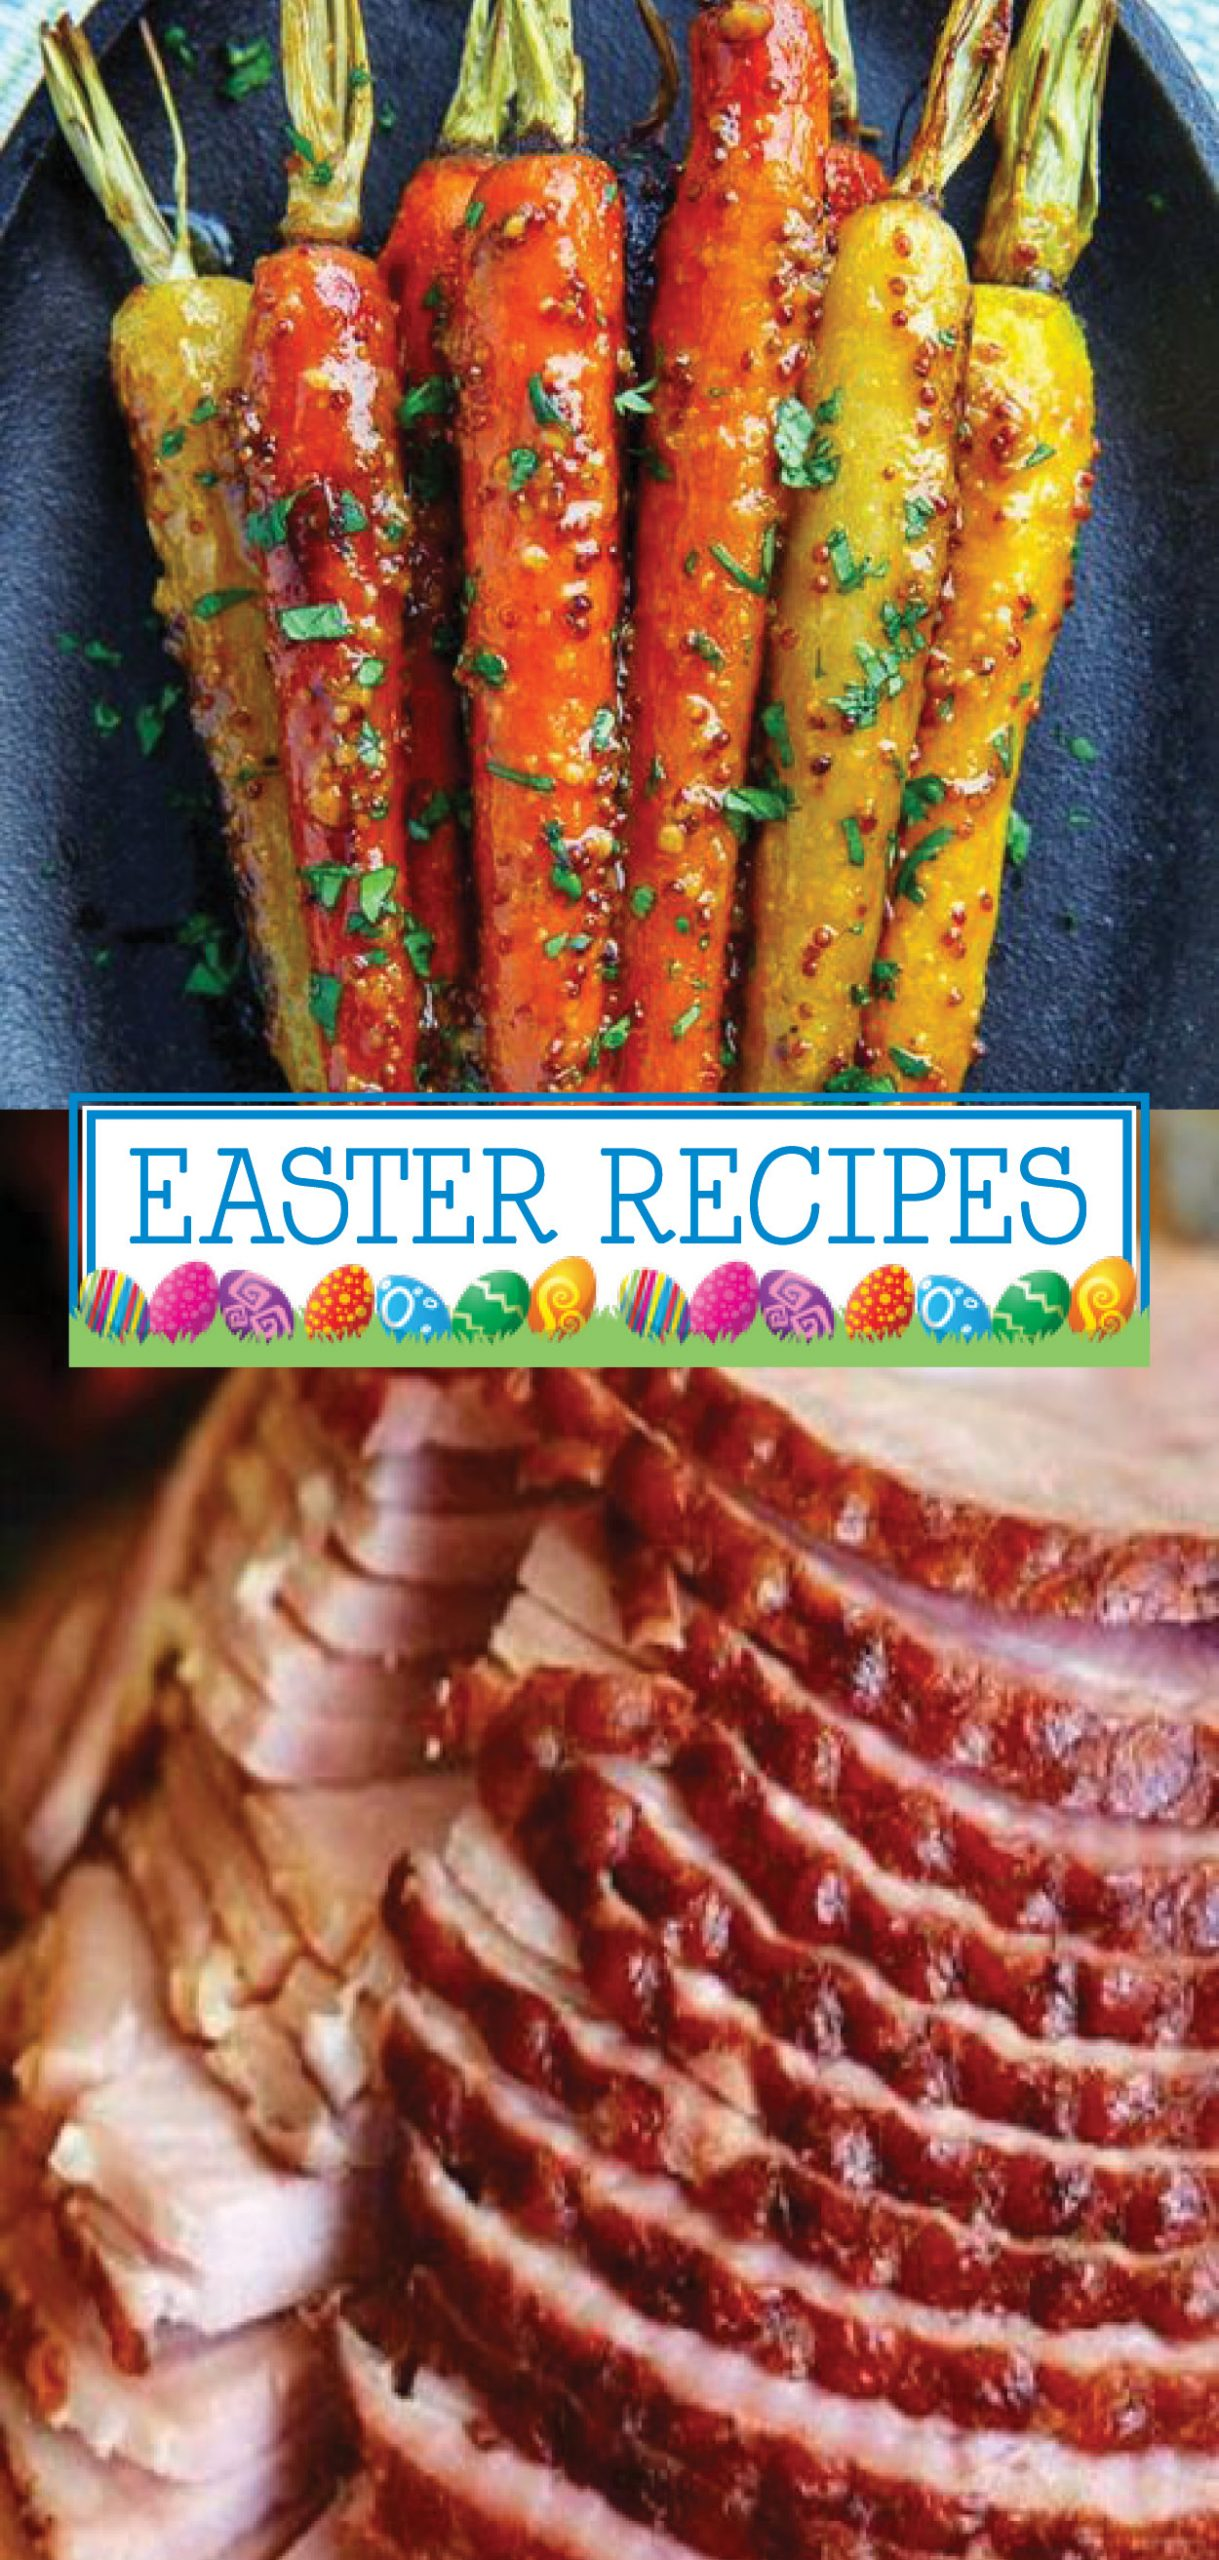 The BEST Easter Recipes - We LOVE Easter and the delicious food that comes along with it.